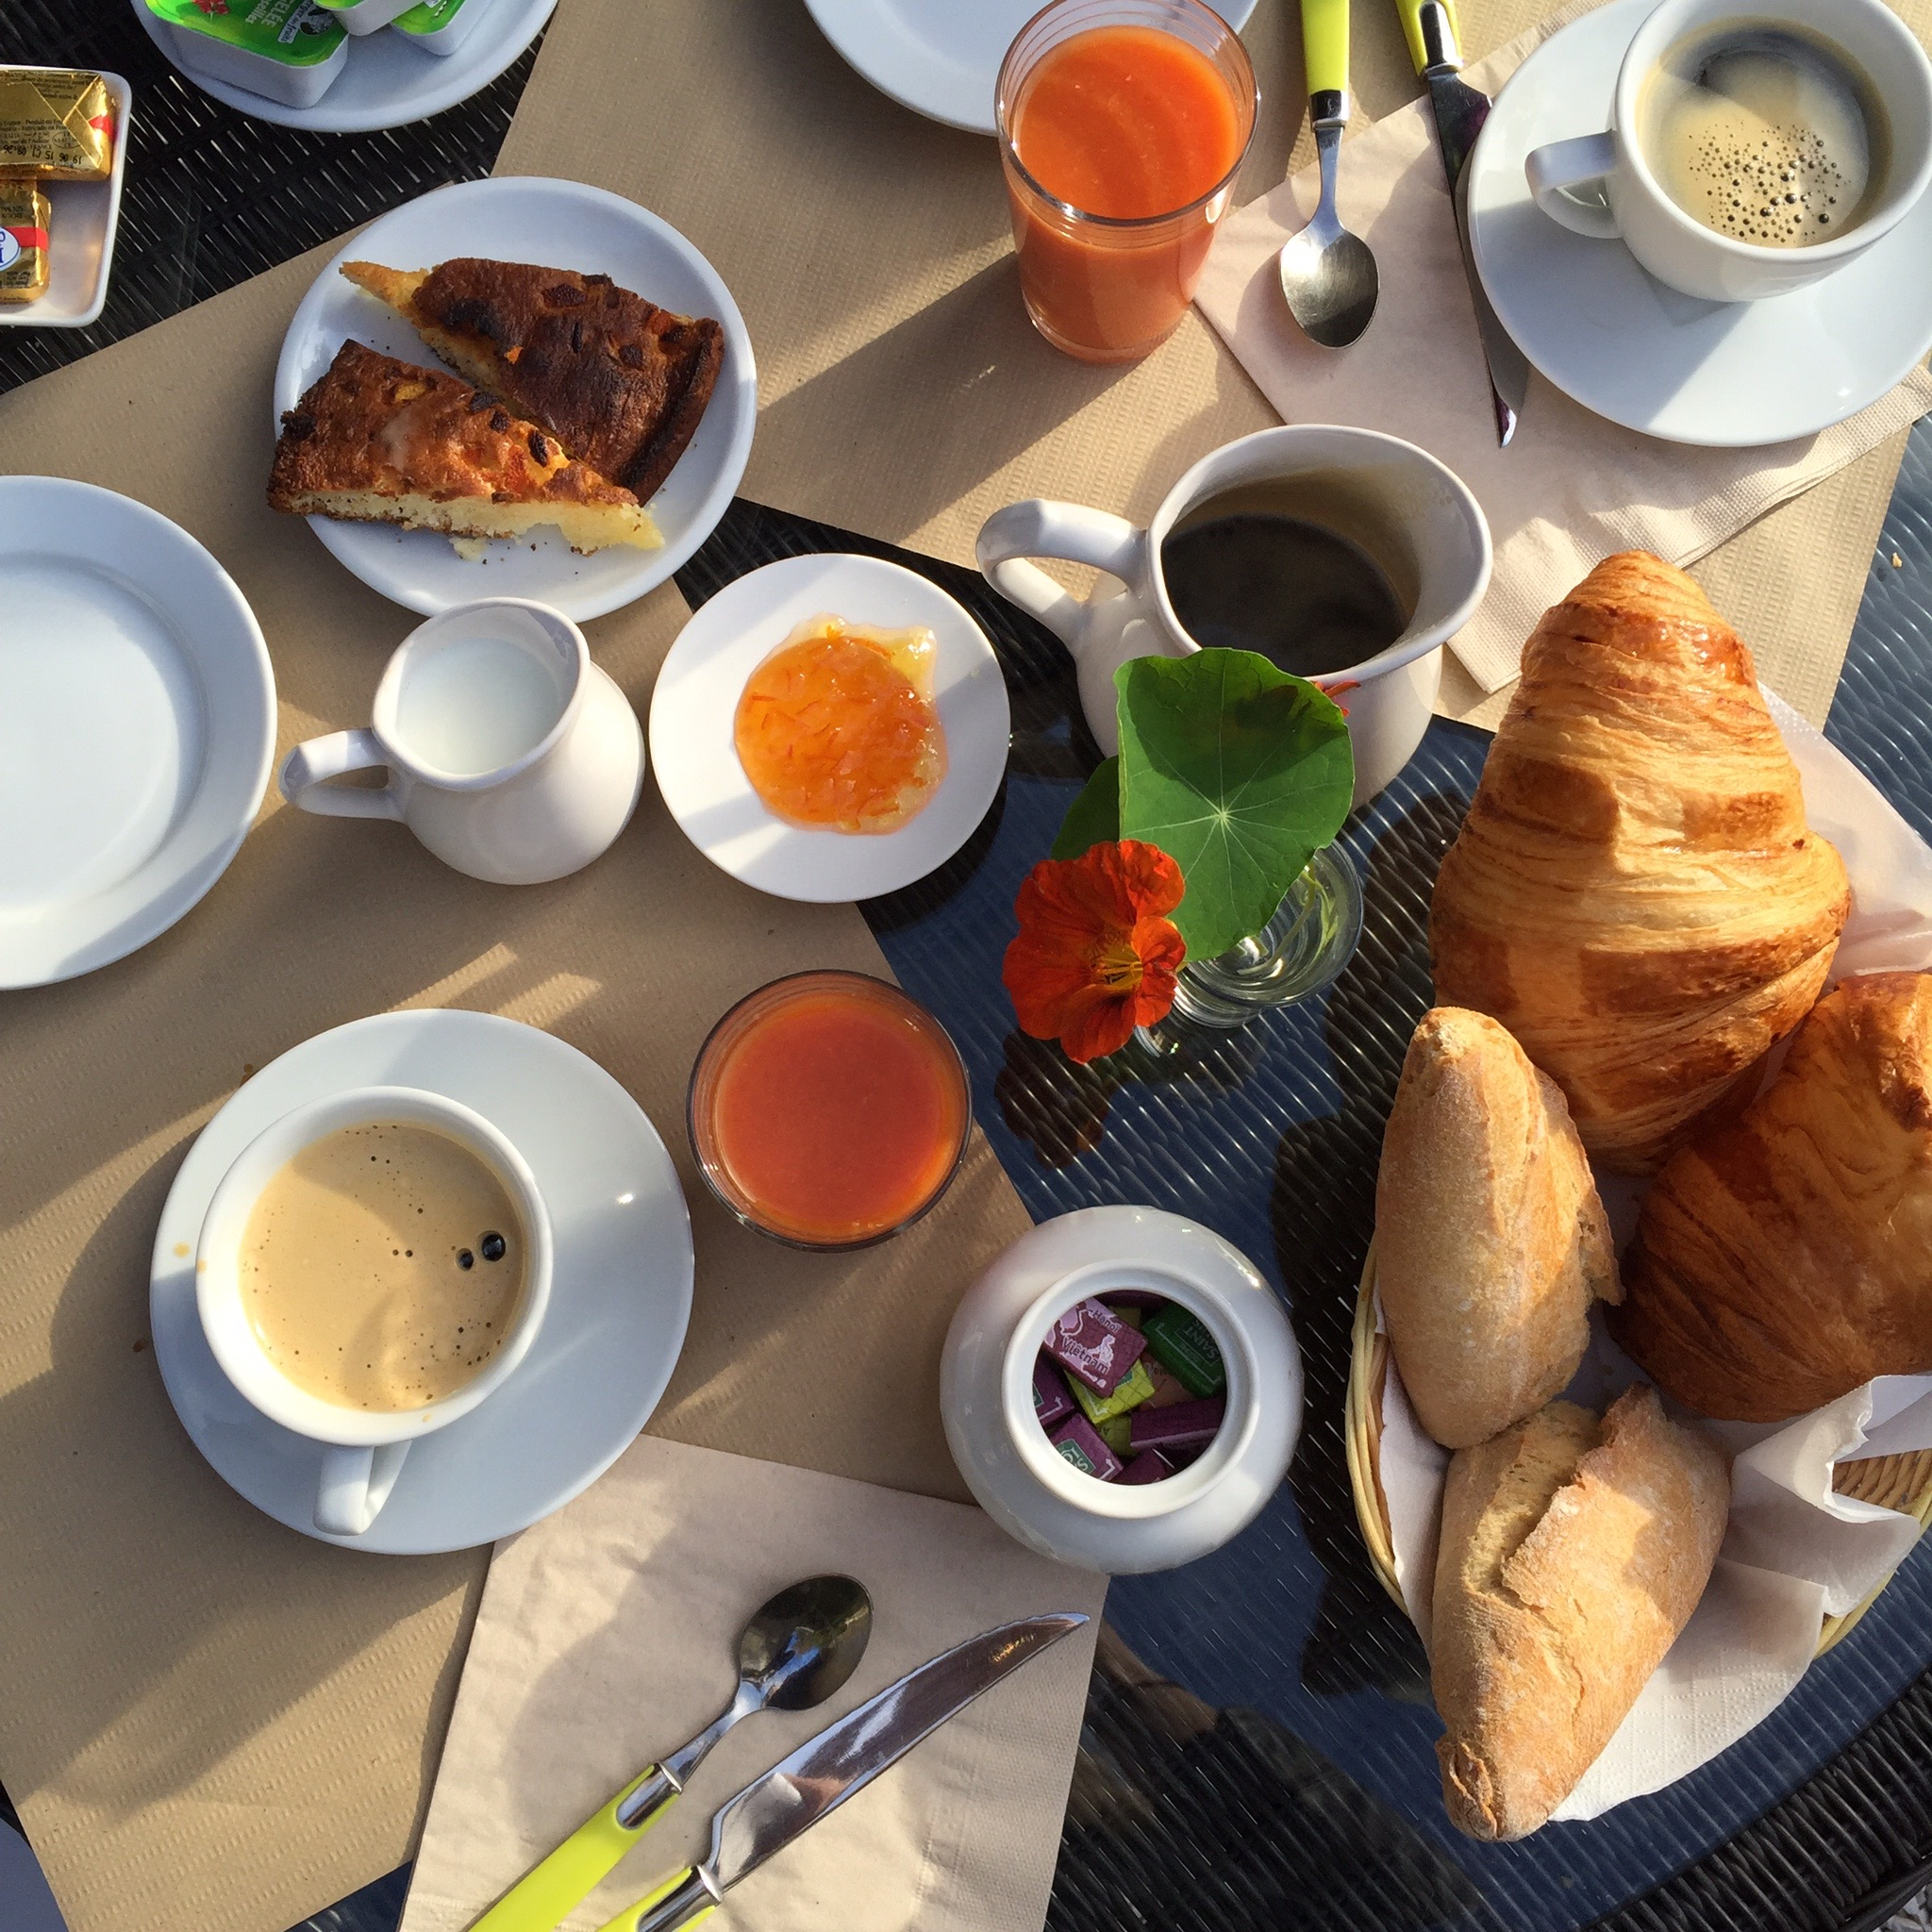 The continental breakfast spread | Photograph by Lauren L Caron © 2015